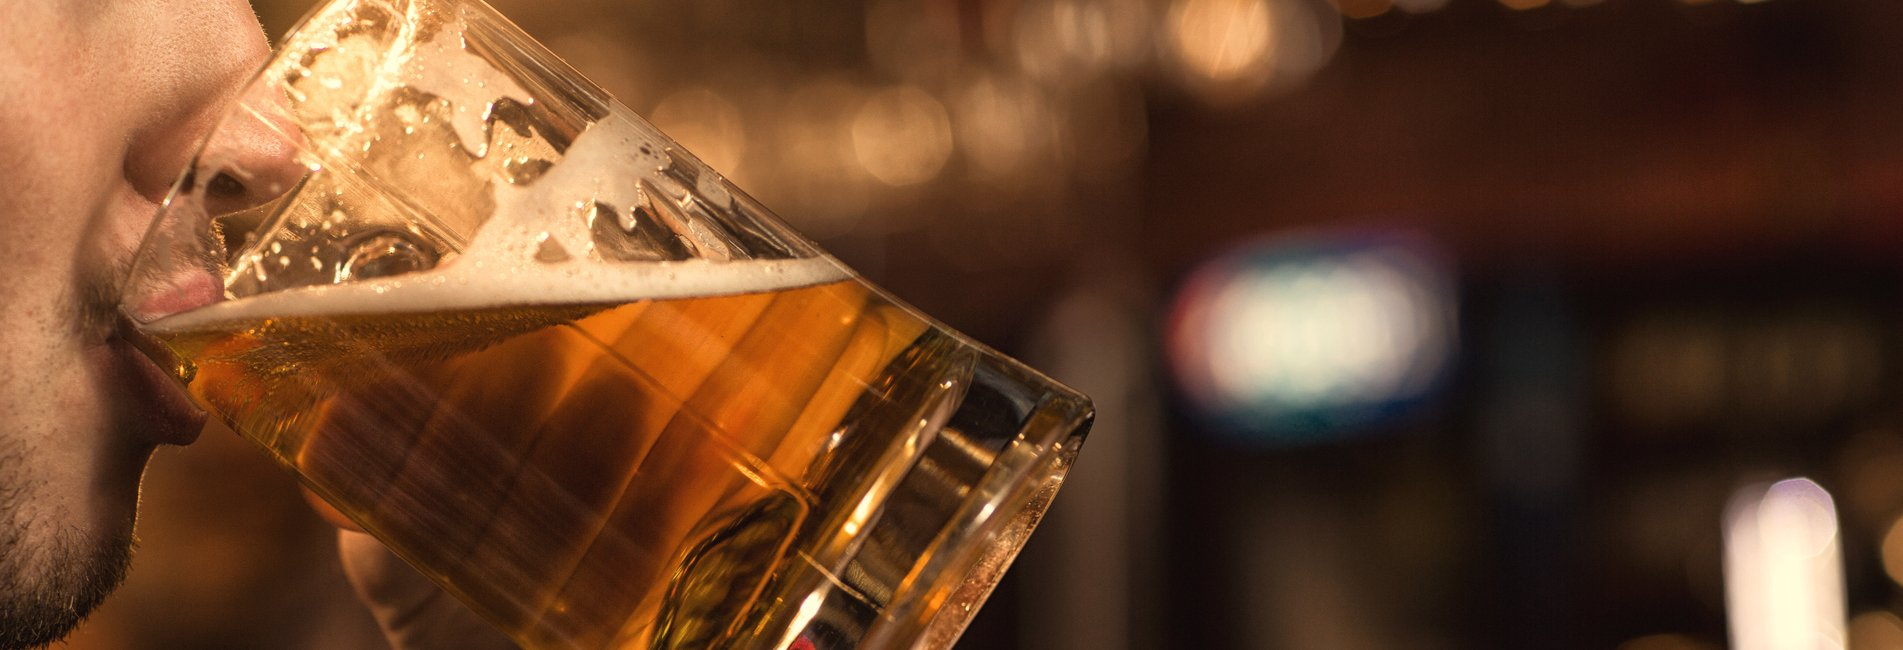 Alcohol Abuse - Resurgence - A man is sitting at a bar and partaking in alcohol abuse as he binge drinks another beer at a bar.